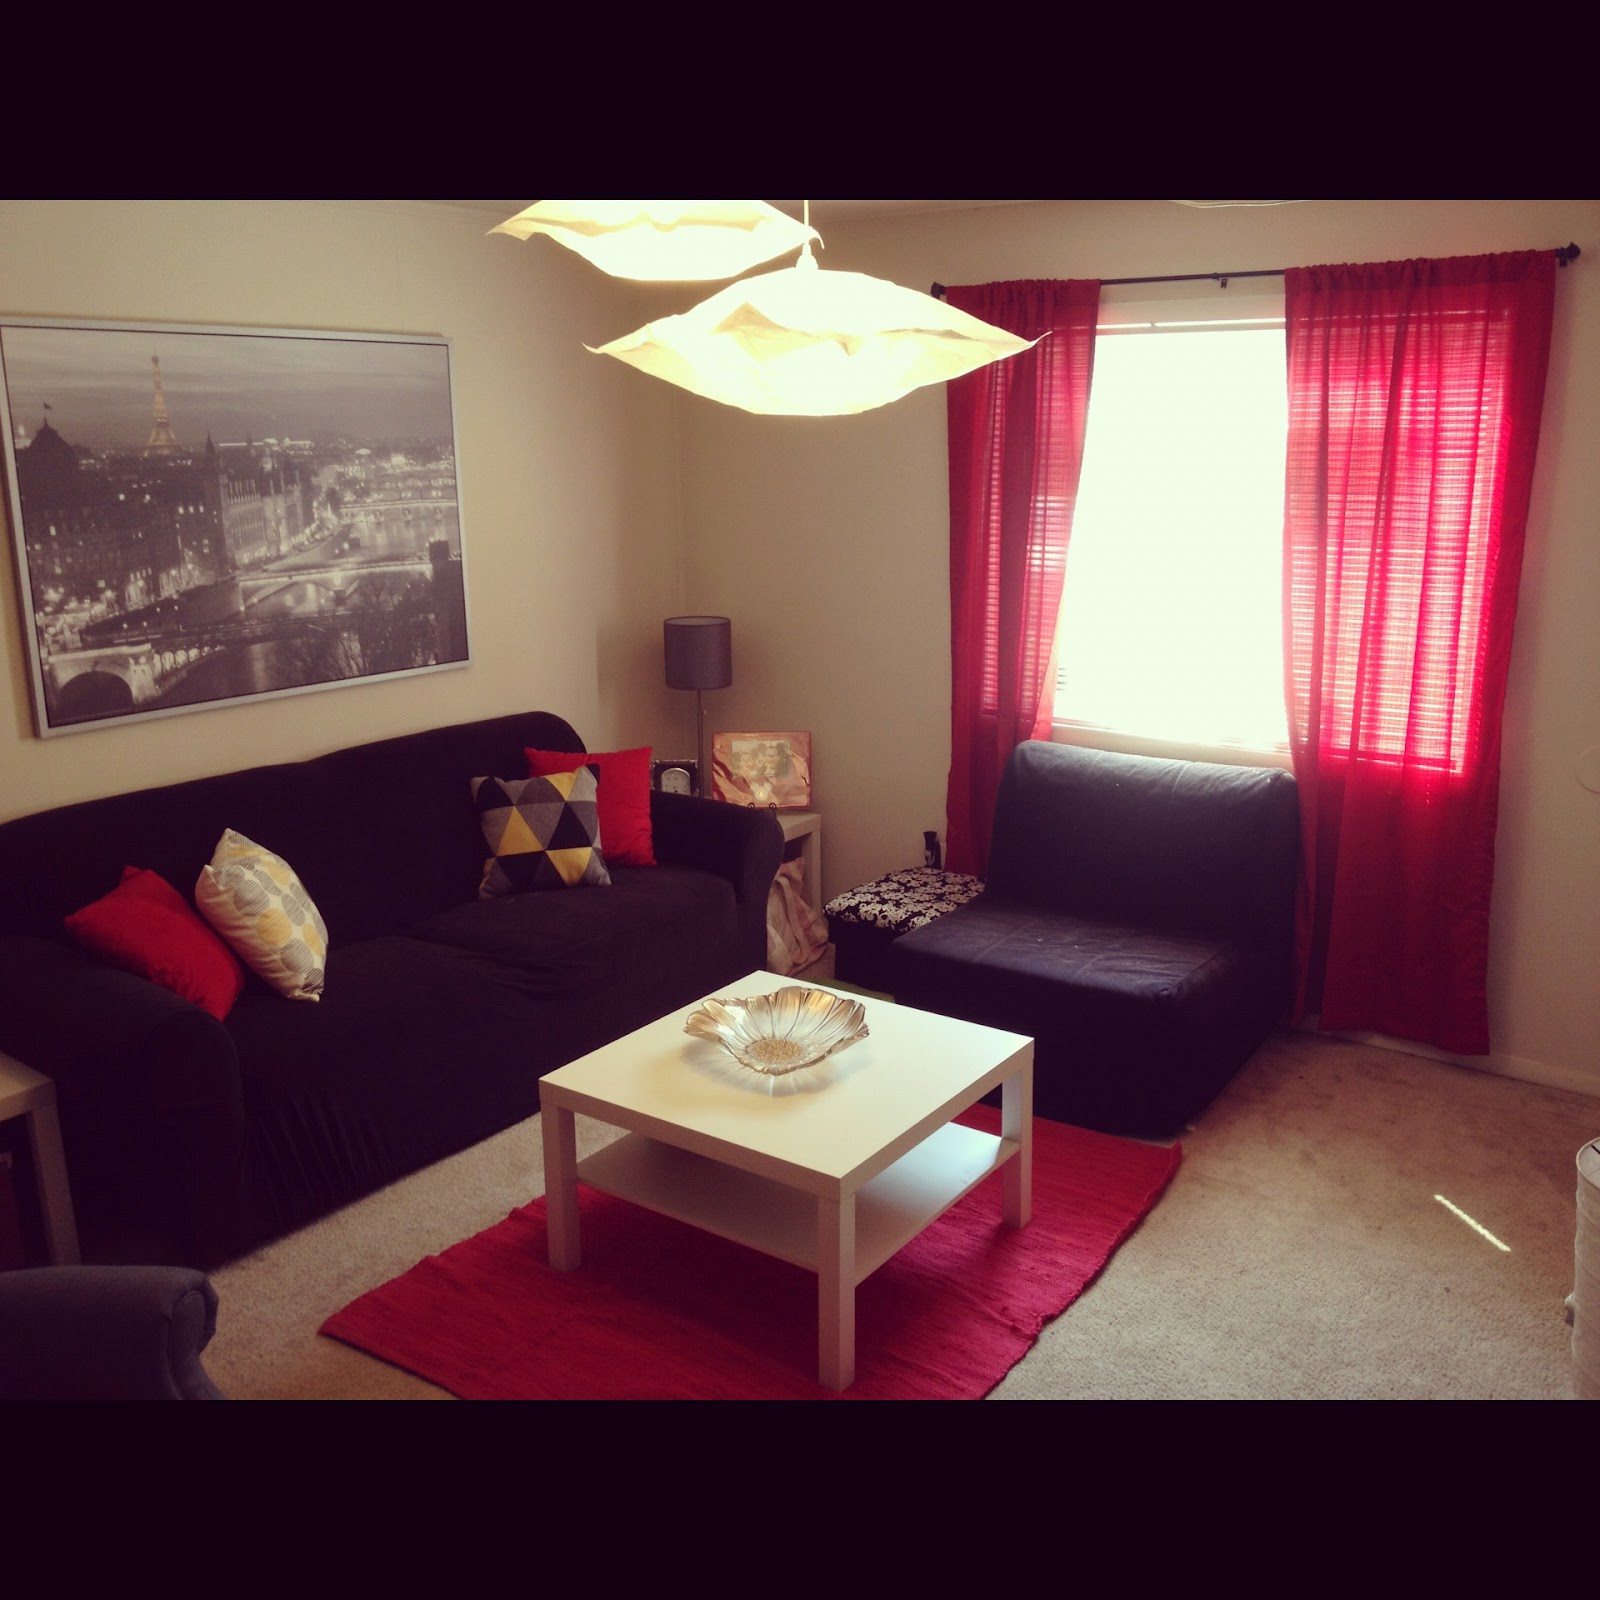 mrandmrswinslett: Cashing in Those Gift Cards: Living Room Makeover